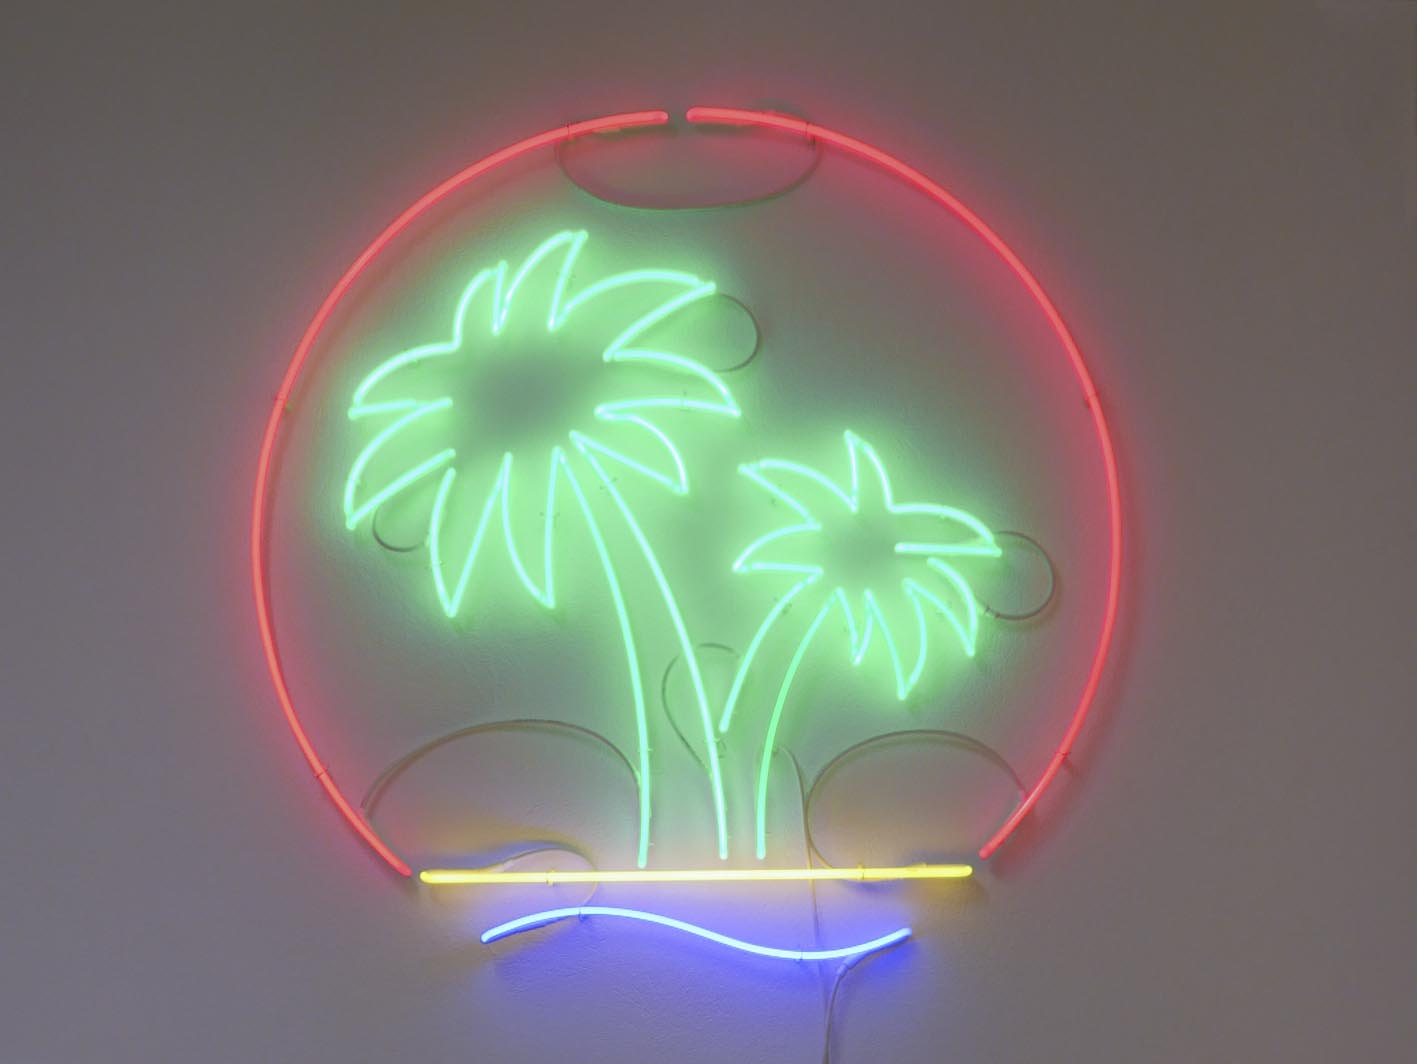 Ryts Monet, Palm Oil (Neon), 2016, Courtesy Galleria Michela Rizzo